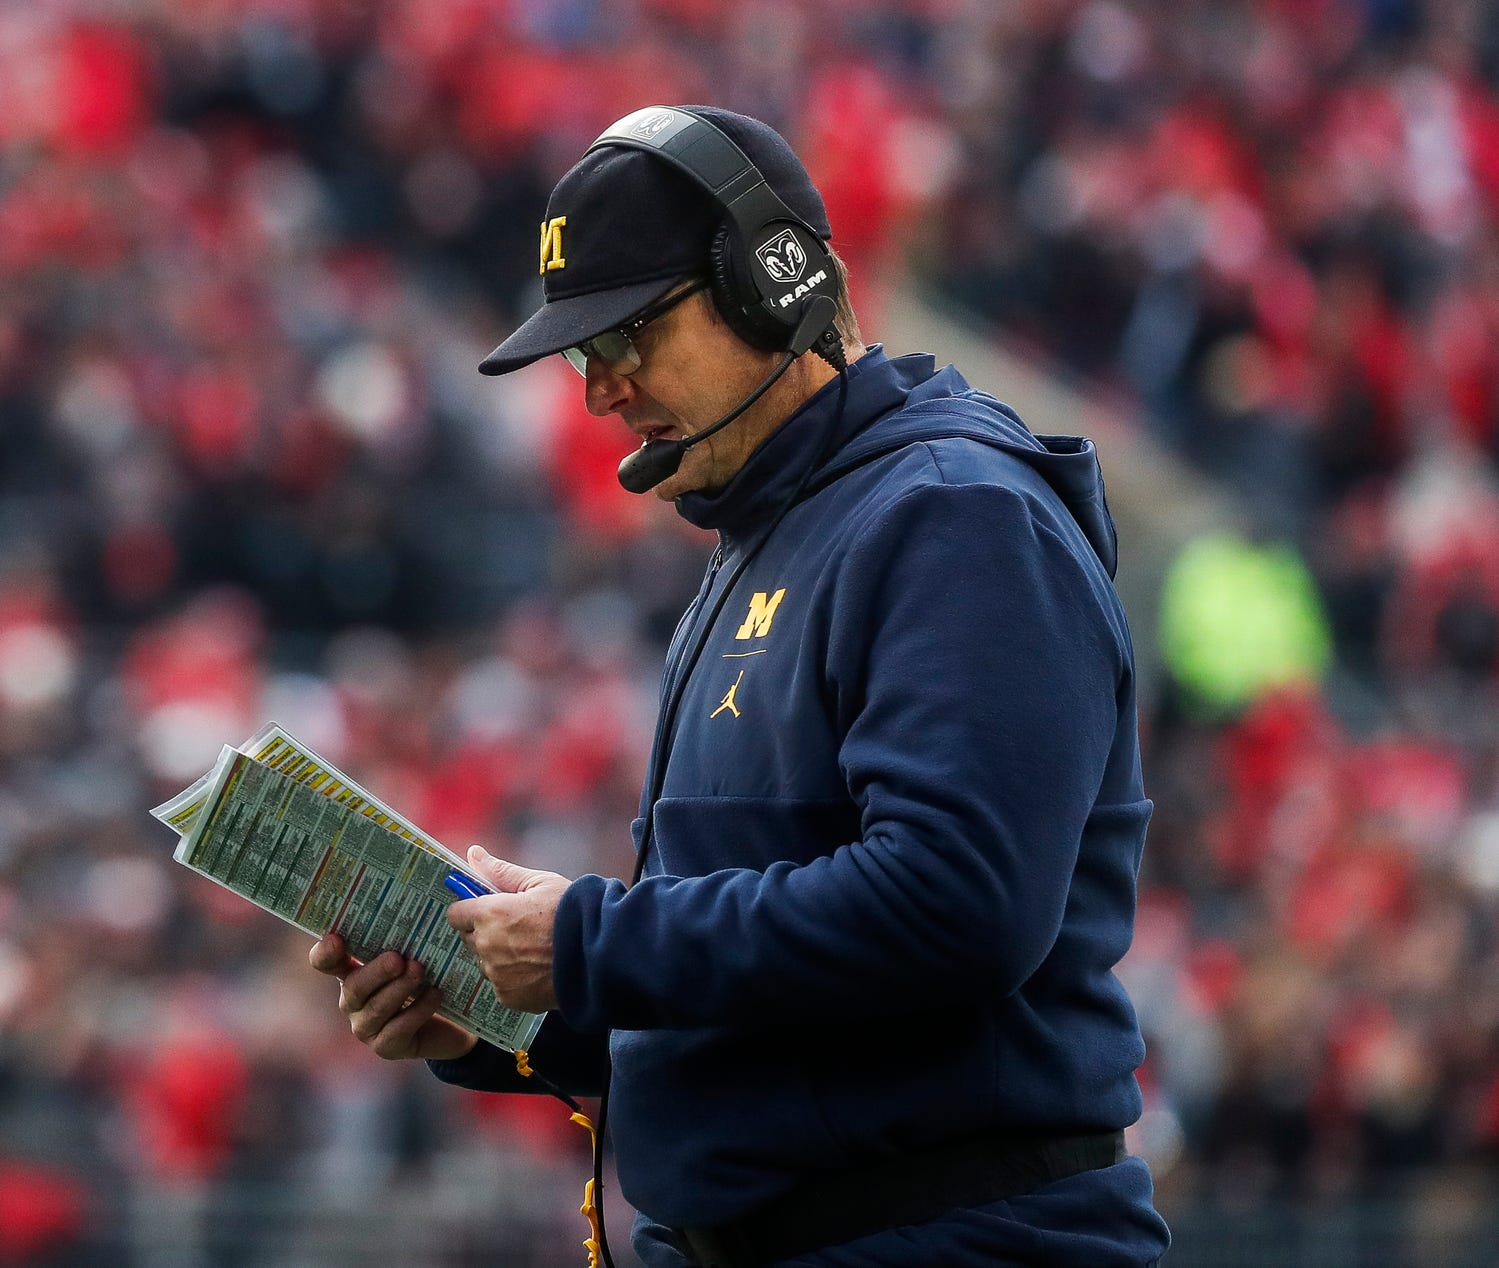 Michigan coach Jim Harbaugh during a timeout in the second half against Ohio State this season.